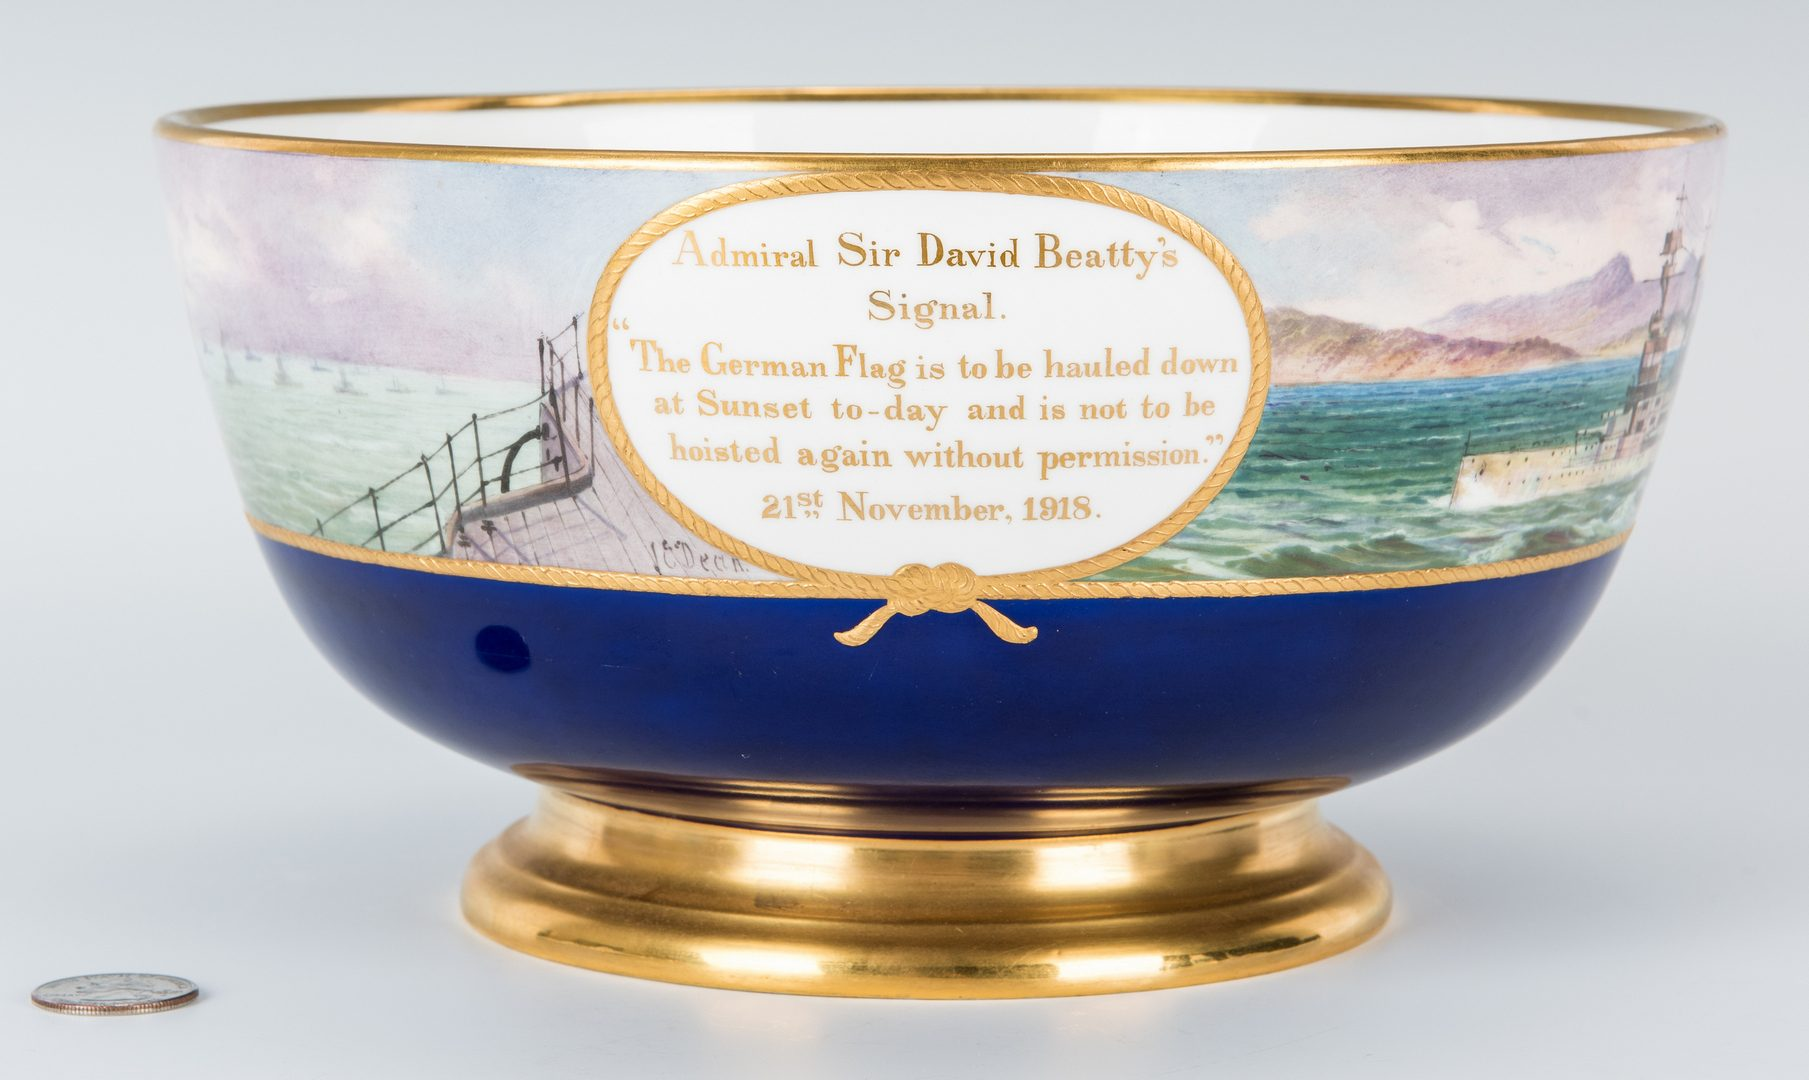 Lot 333: Minton Commemorative Porcelain Bowl